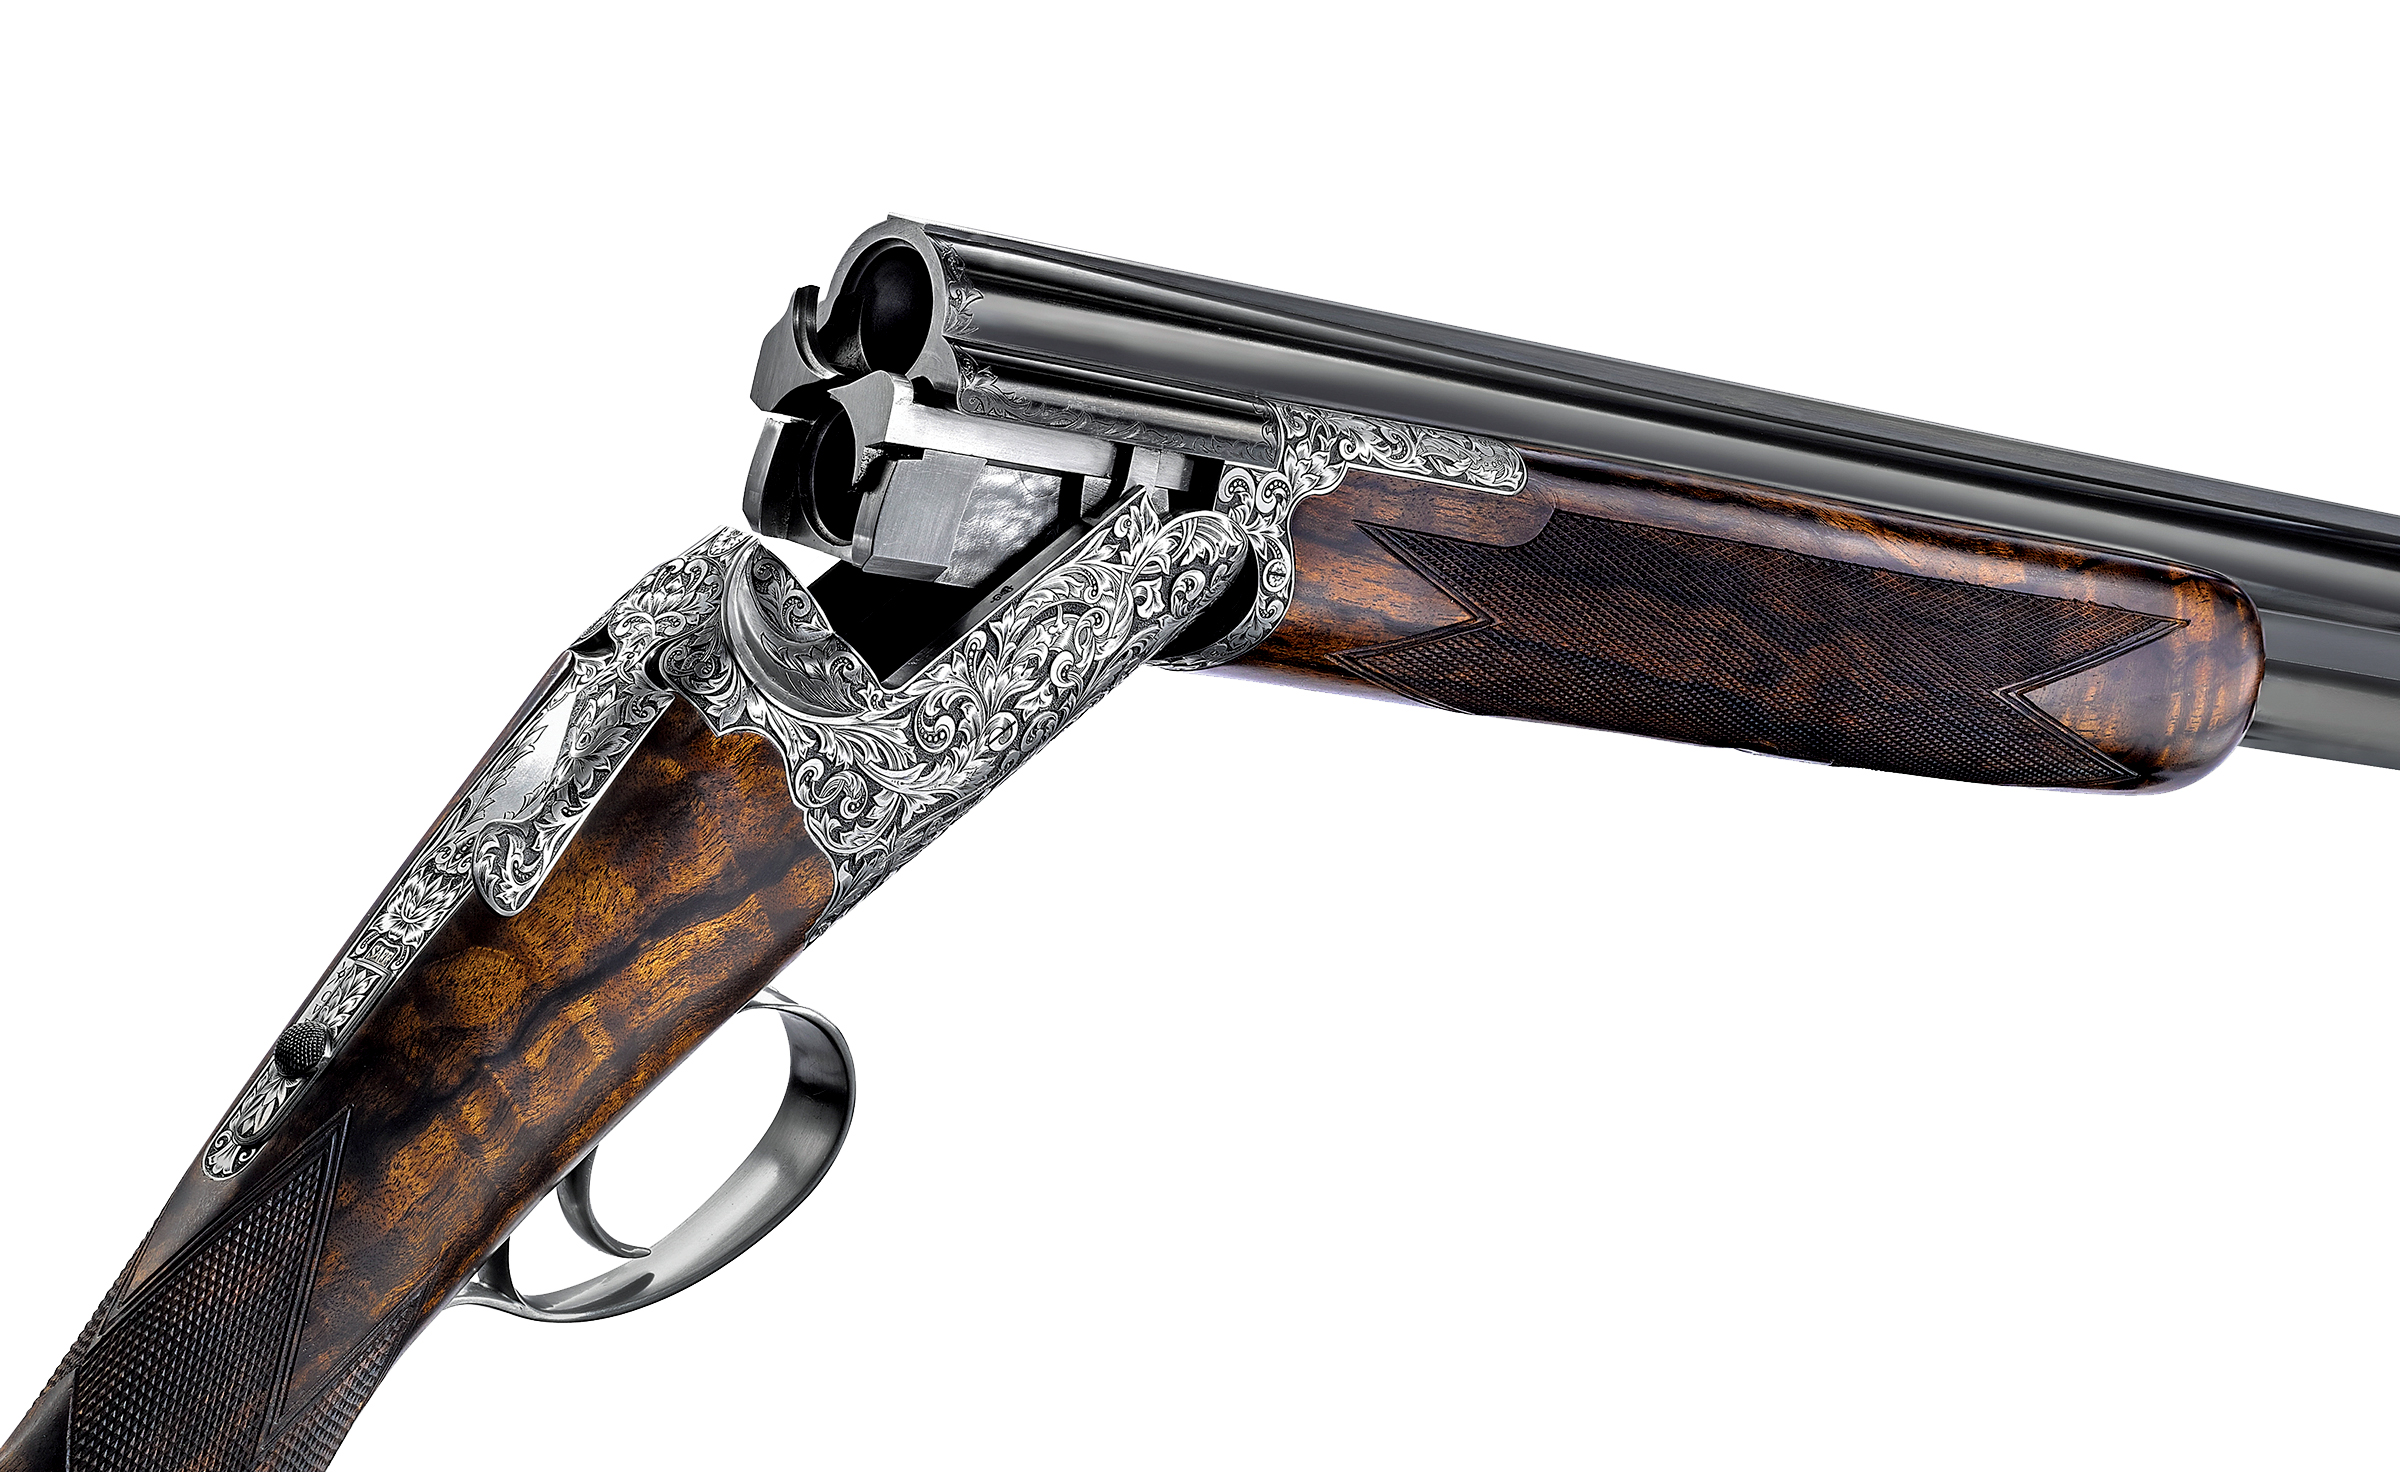 Craftsmanship Superb Masterpieces of British Arts and Crafts - William and Son - Shotgun craftsmanship Craftsmanship: Superb Masterpieces of British Arts and Crafts Craftsmanship Superb Masterpieces of British Arts and Crafts William and Son Shotgun